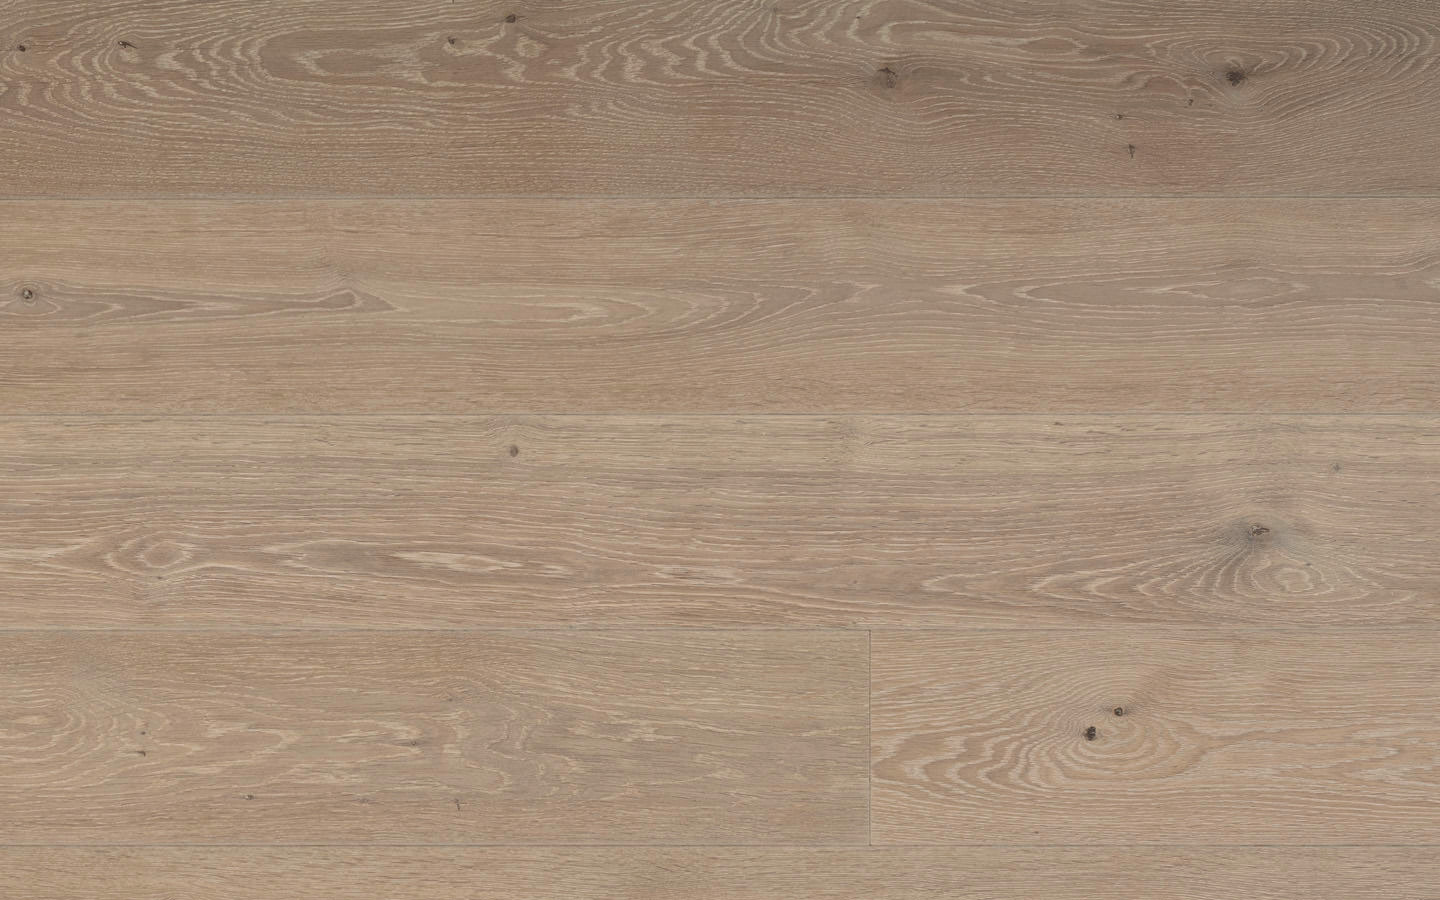 Villa by adler - Oak Nizza premium wire brushed color oiled - 15 x 186 x 2200 mm